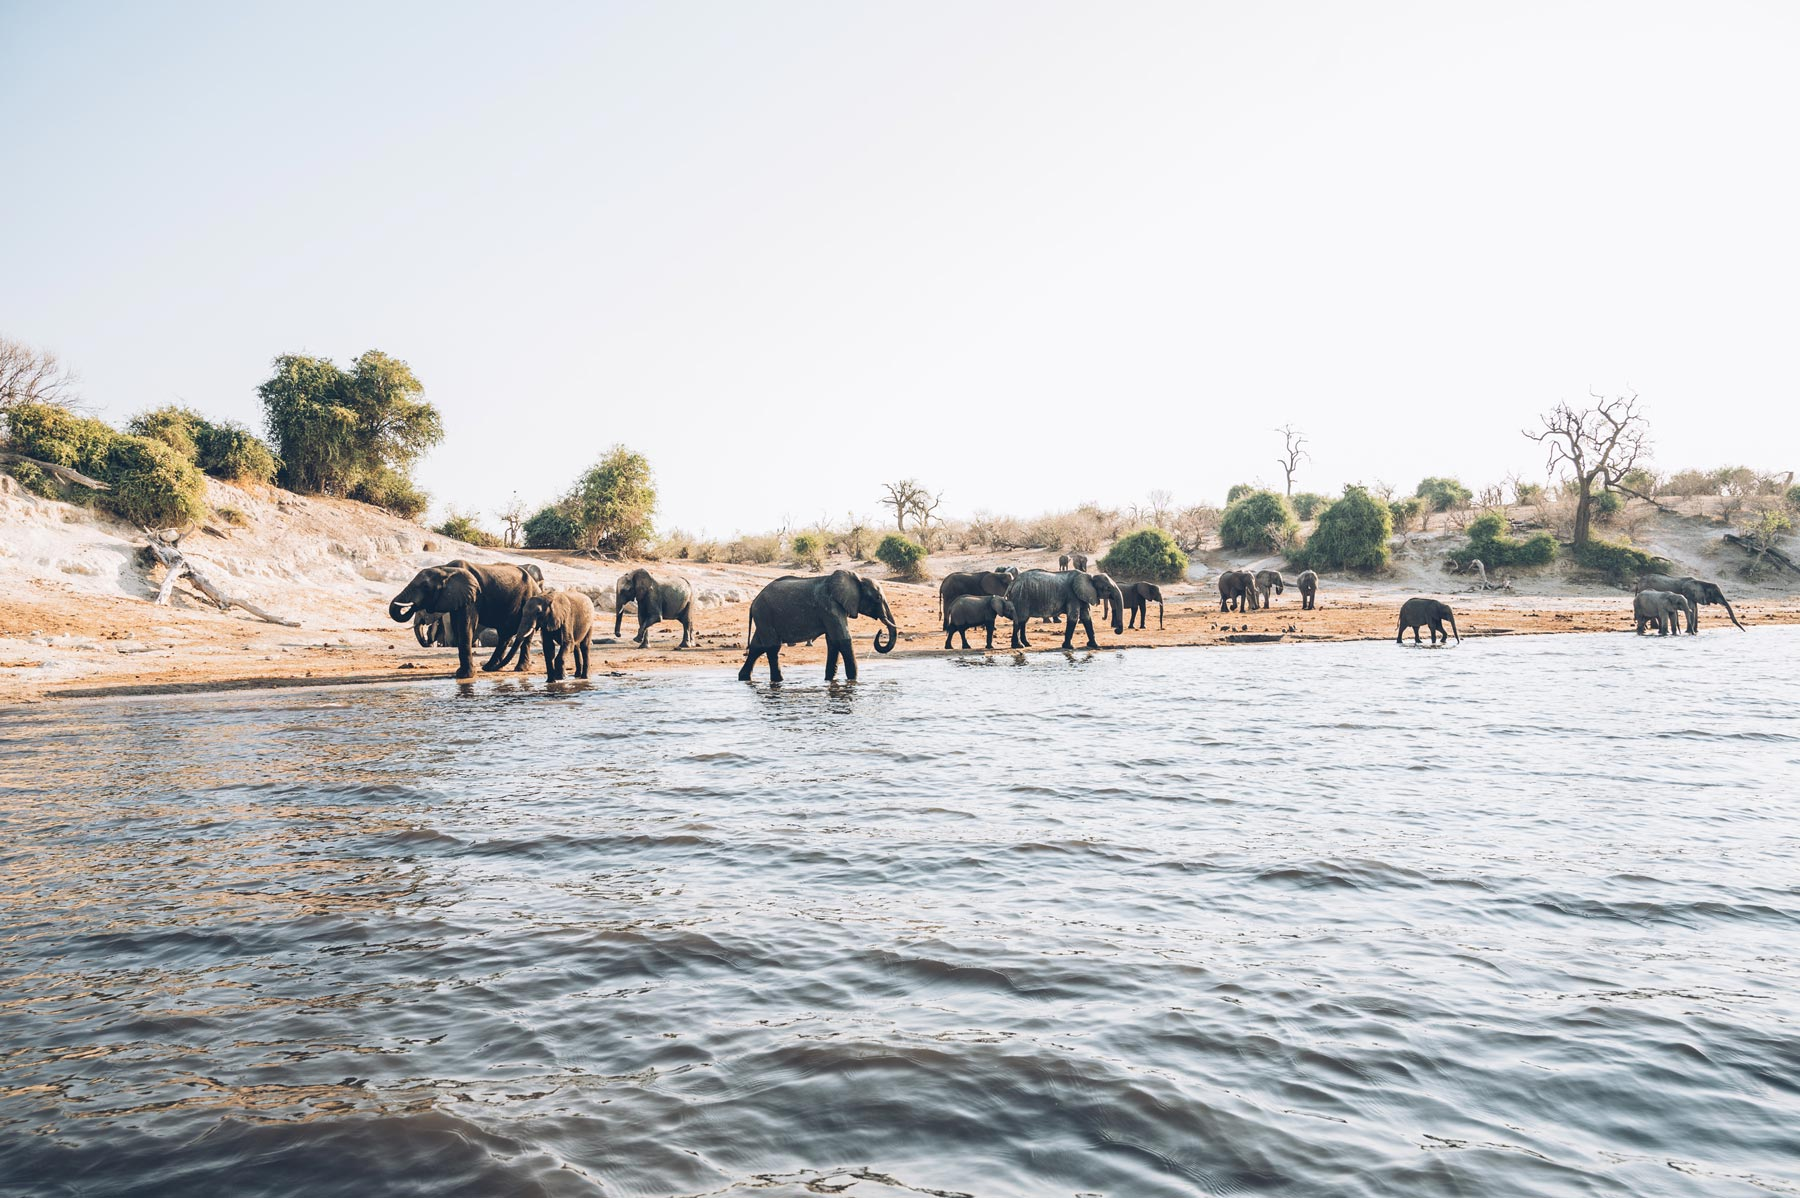 Parc National de Chobe, Les éléphants